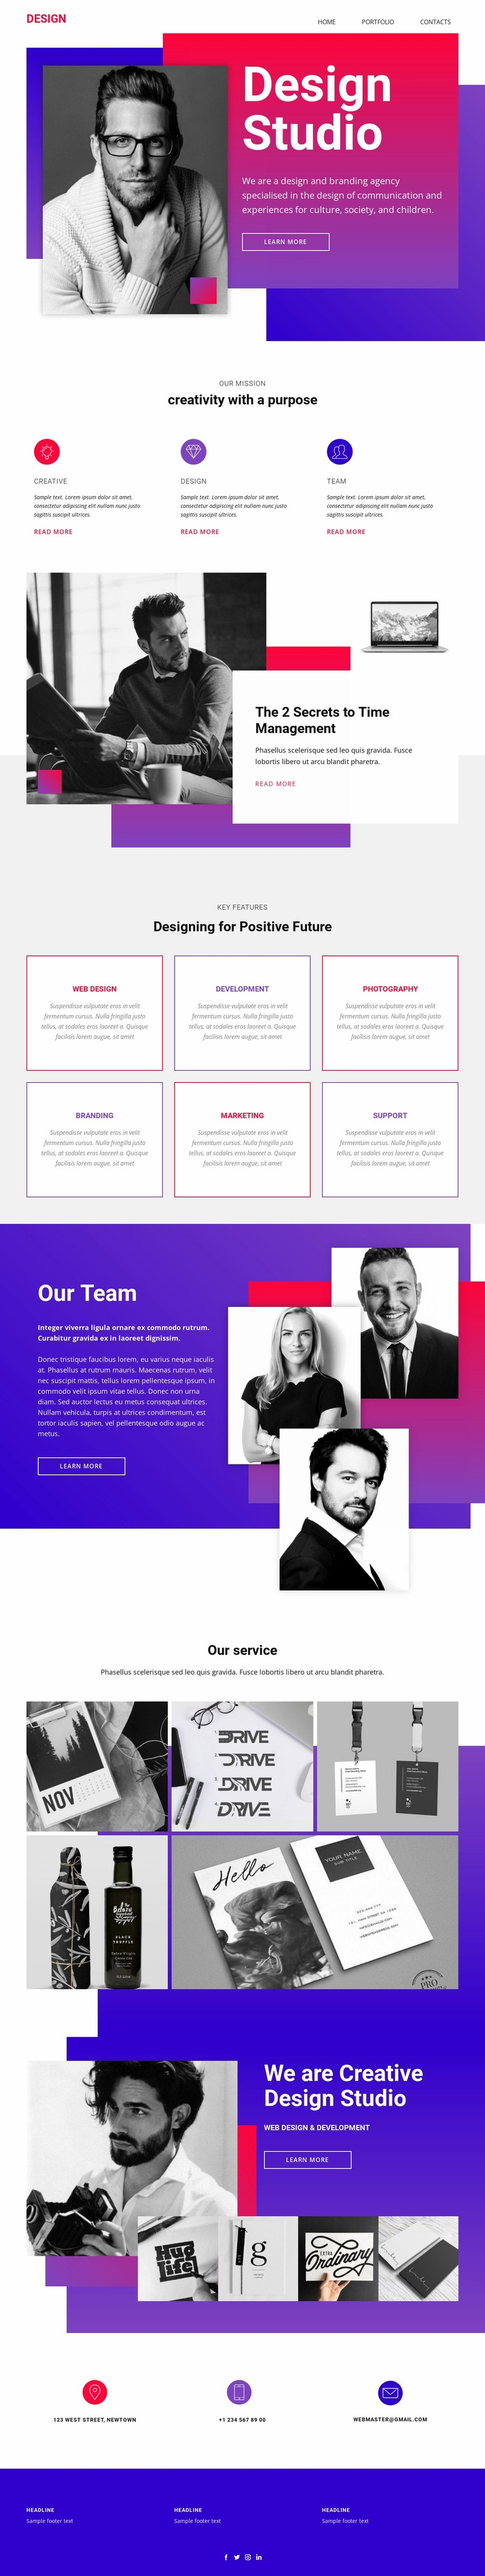 Big ideas and exceptional execution Html Code Example